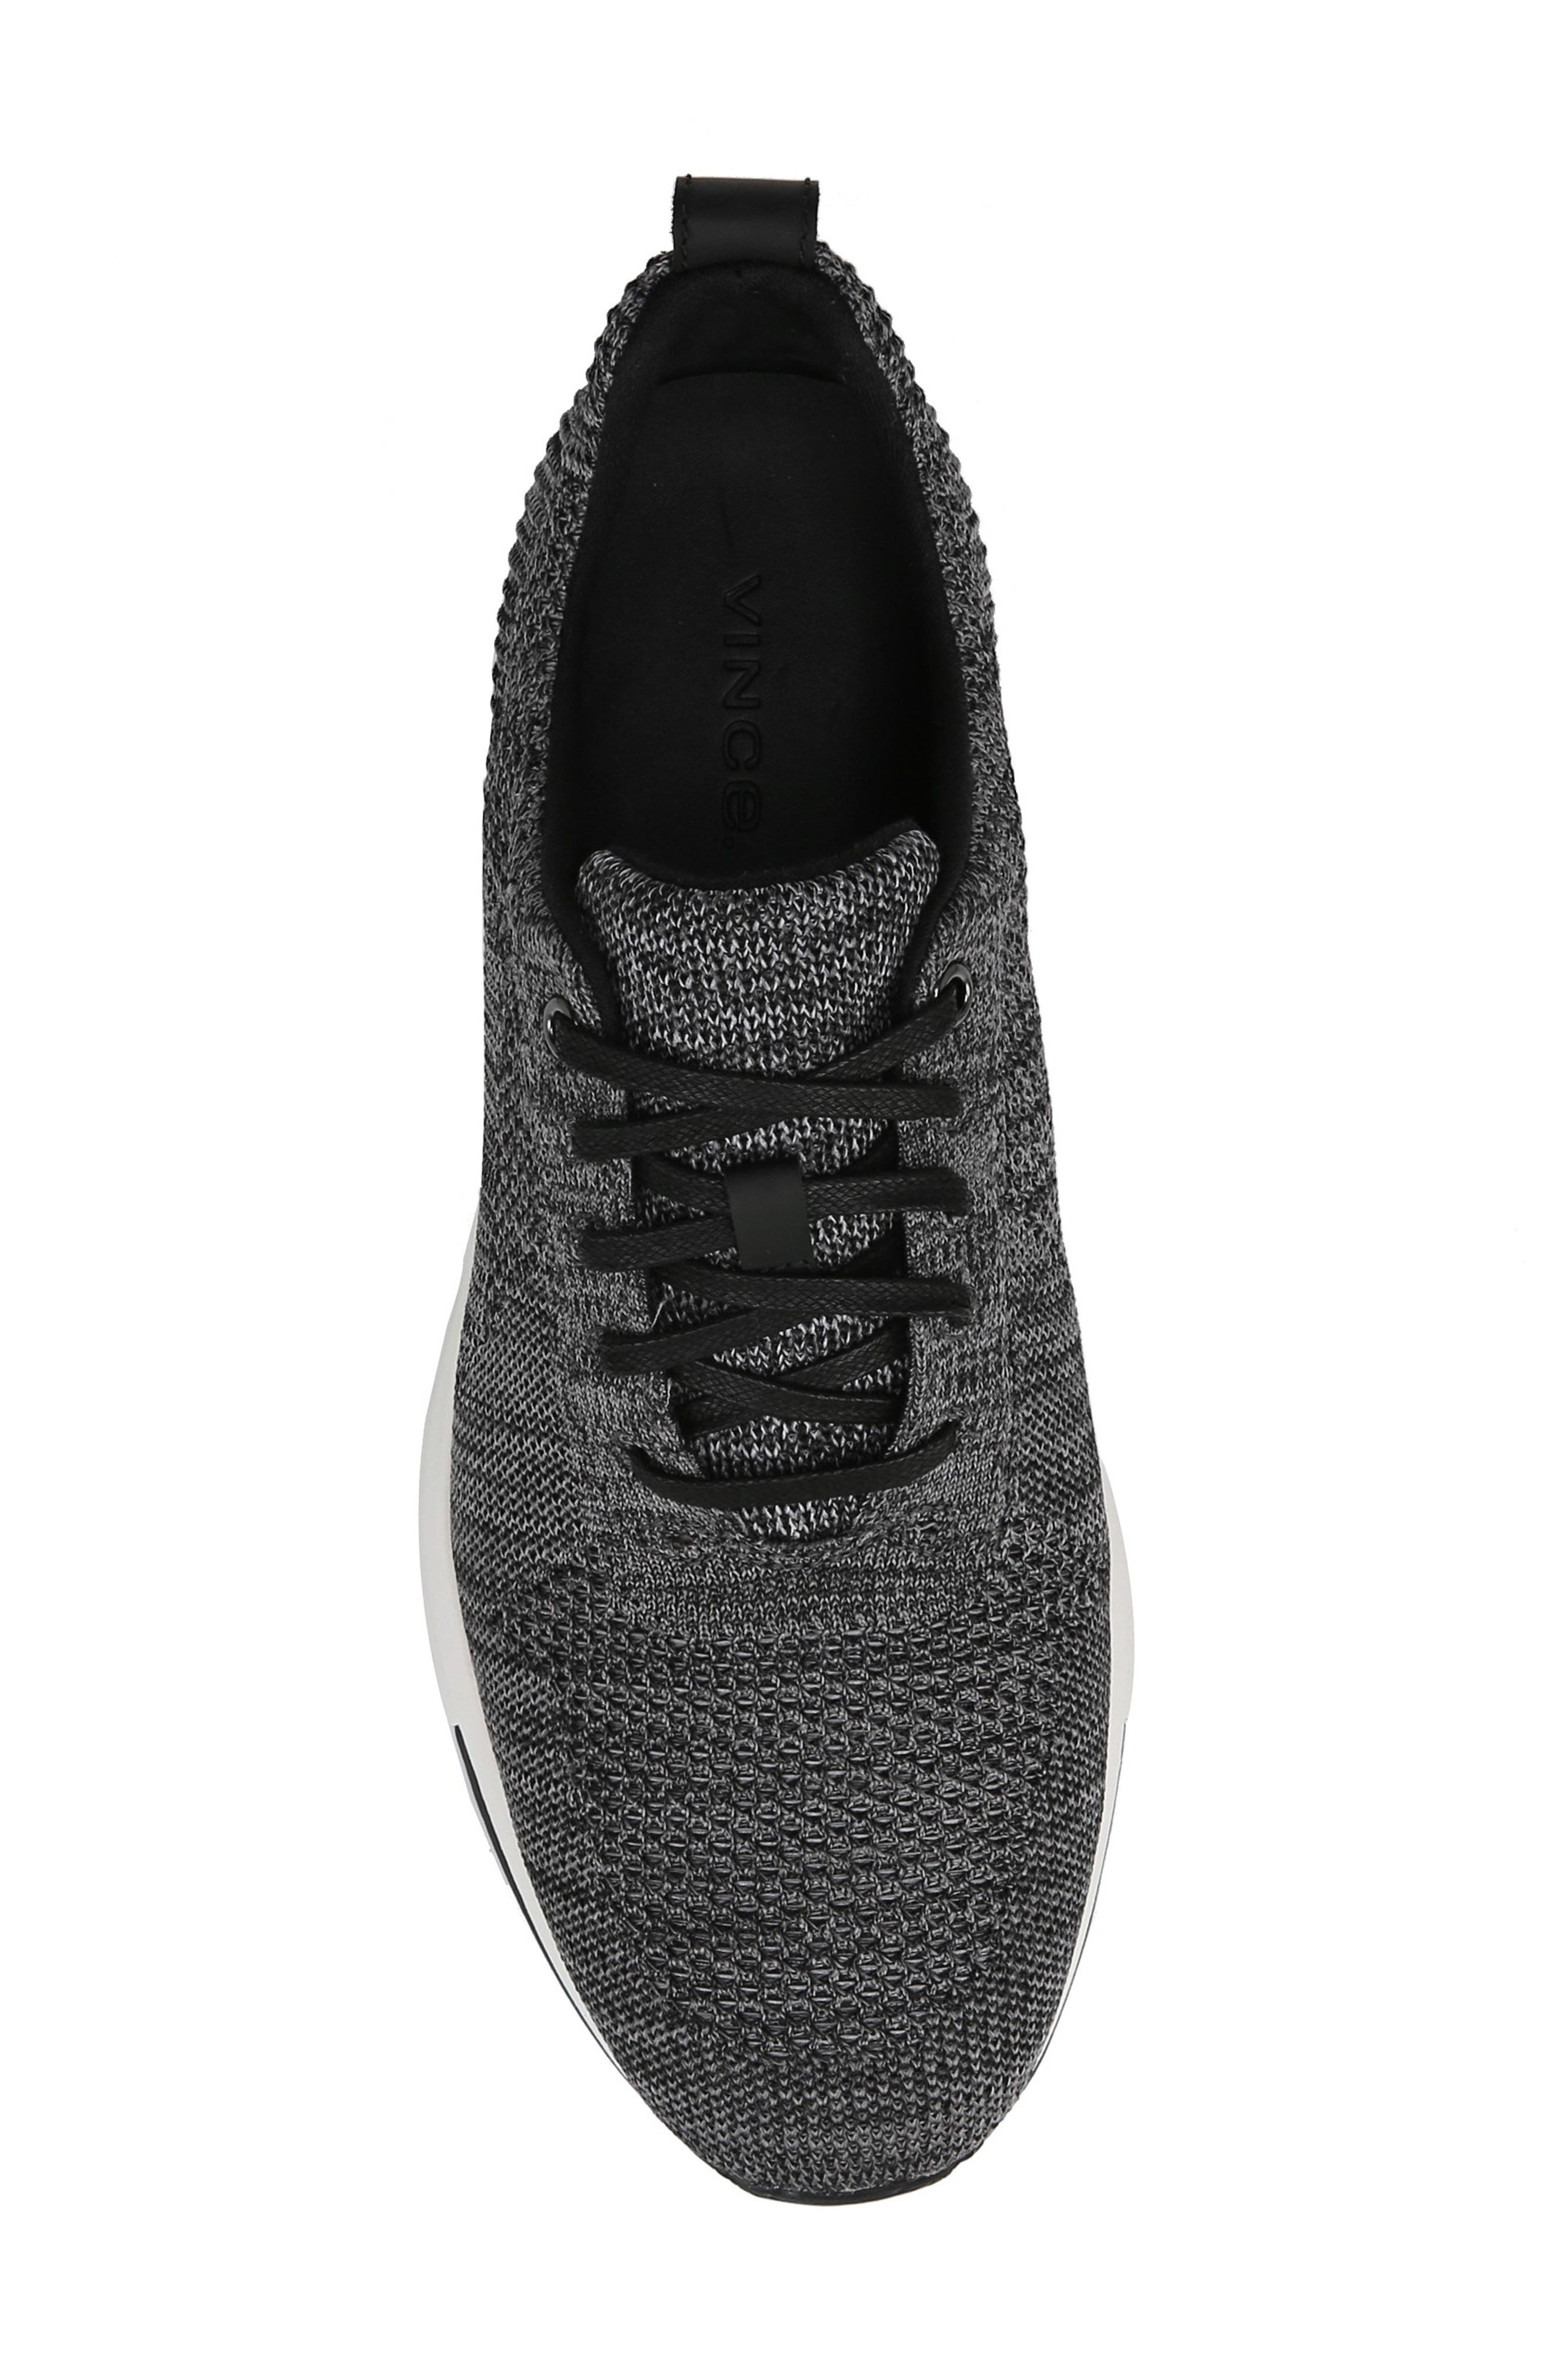 VINCE, Palo Knit Sneaker, Alternate thumbnail 5, color, MARL GREY/ BLACK